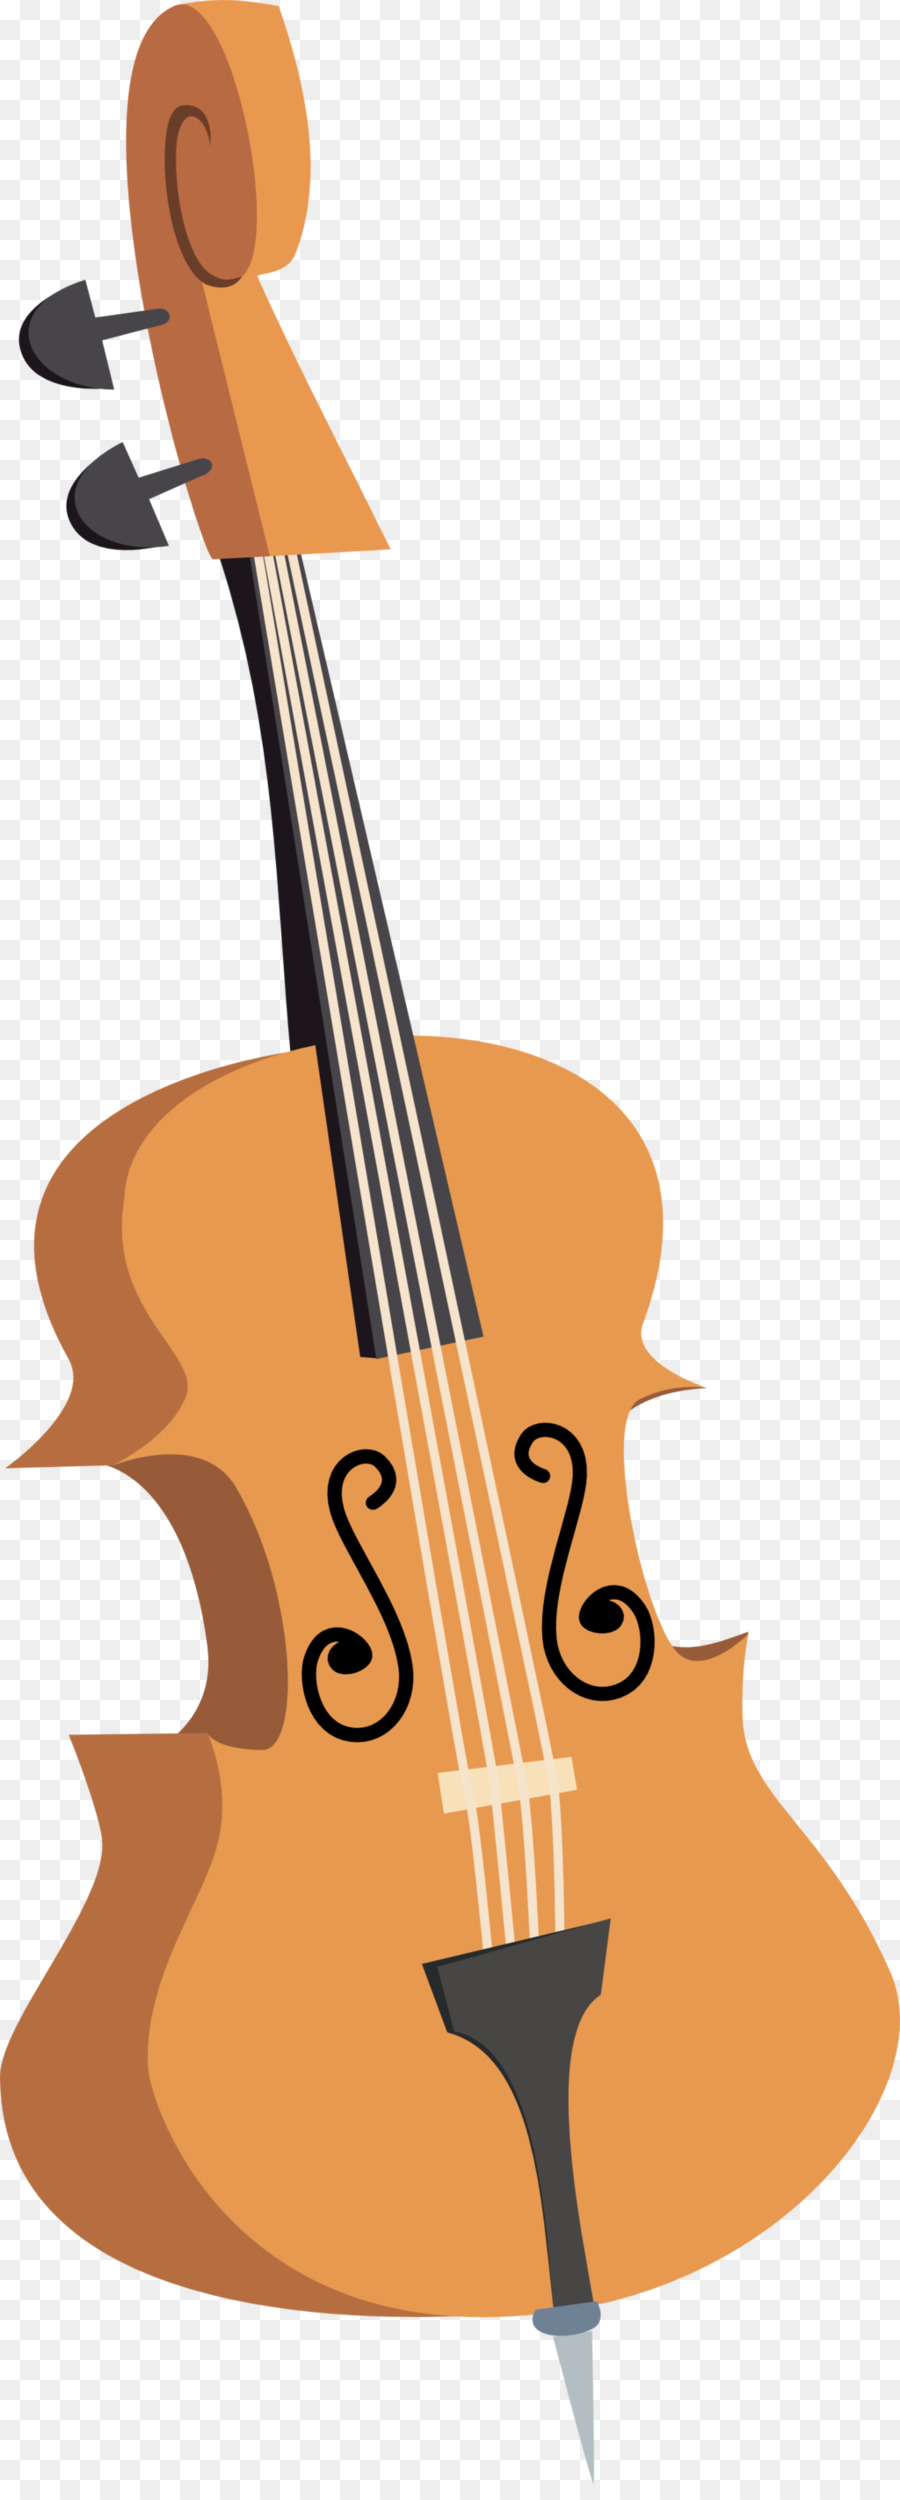 Violin Cartoon